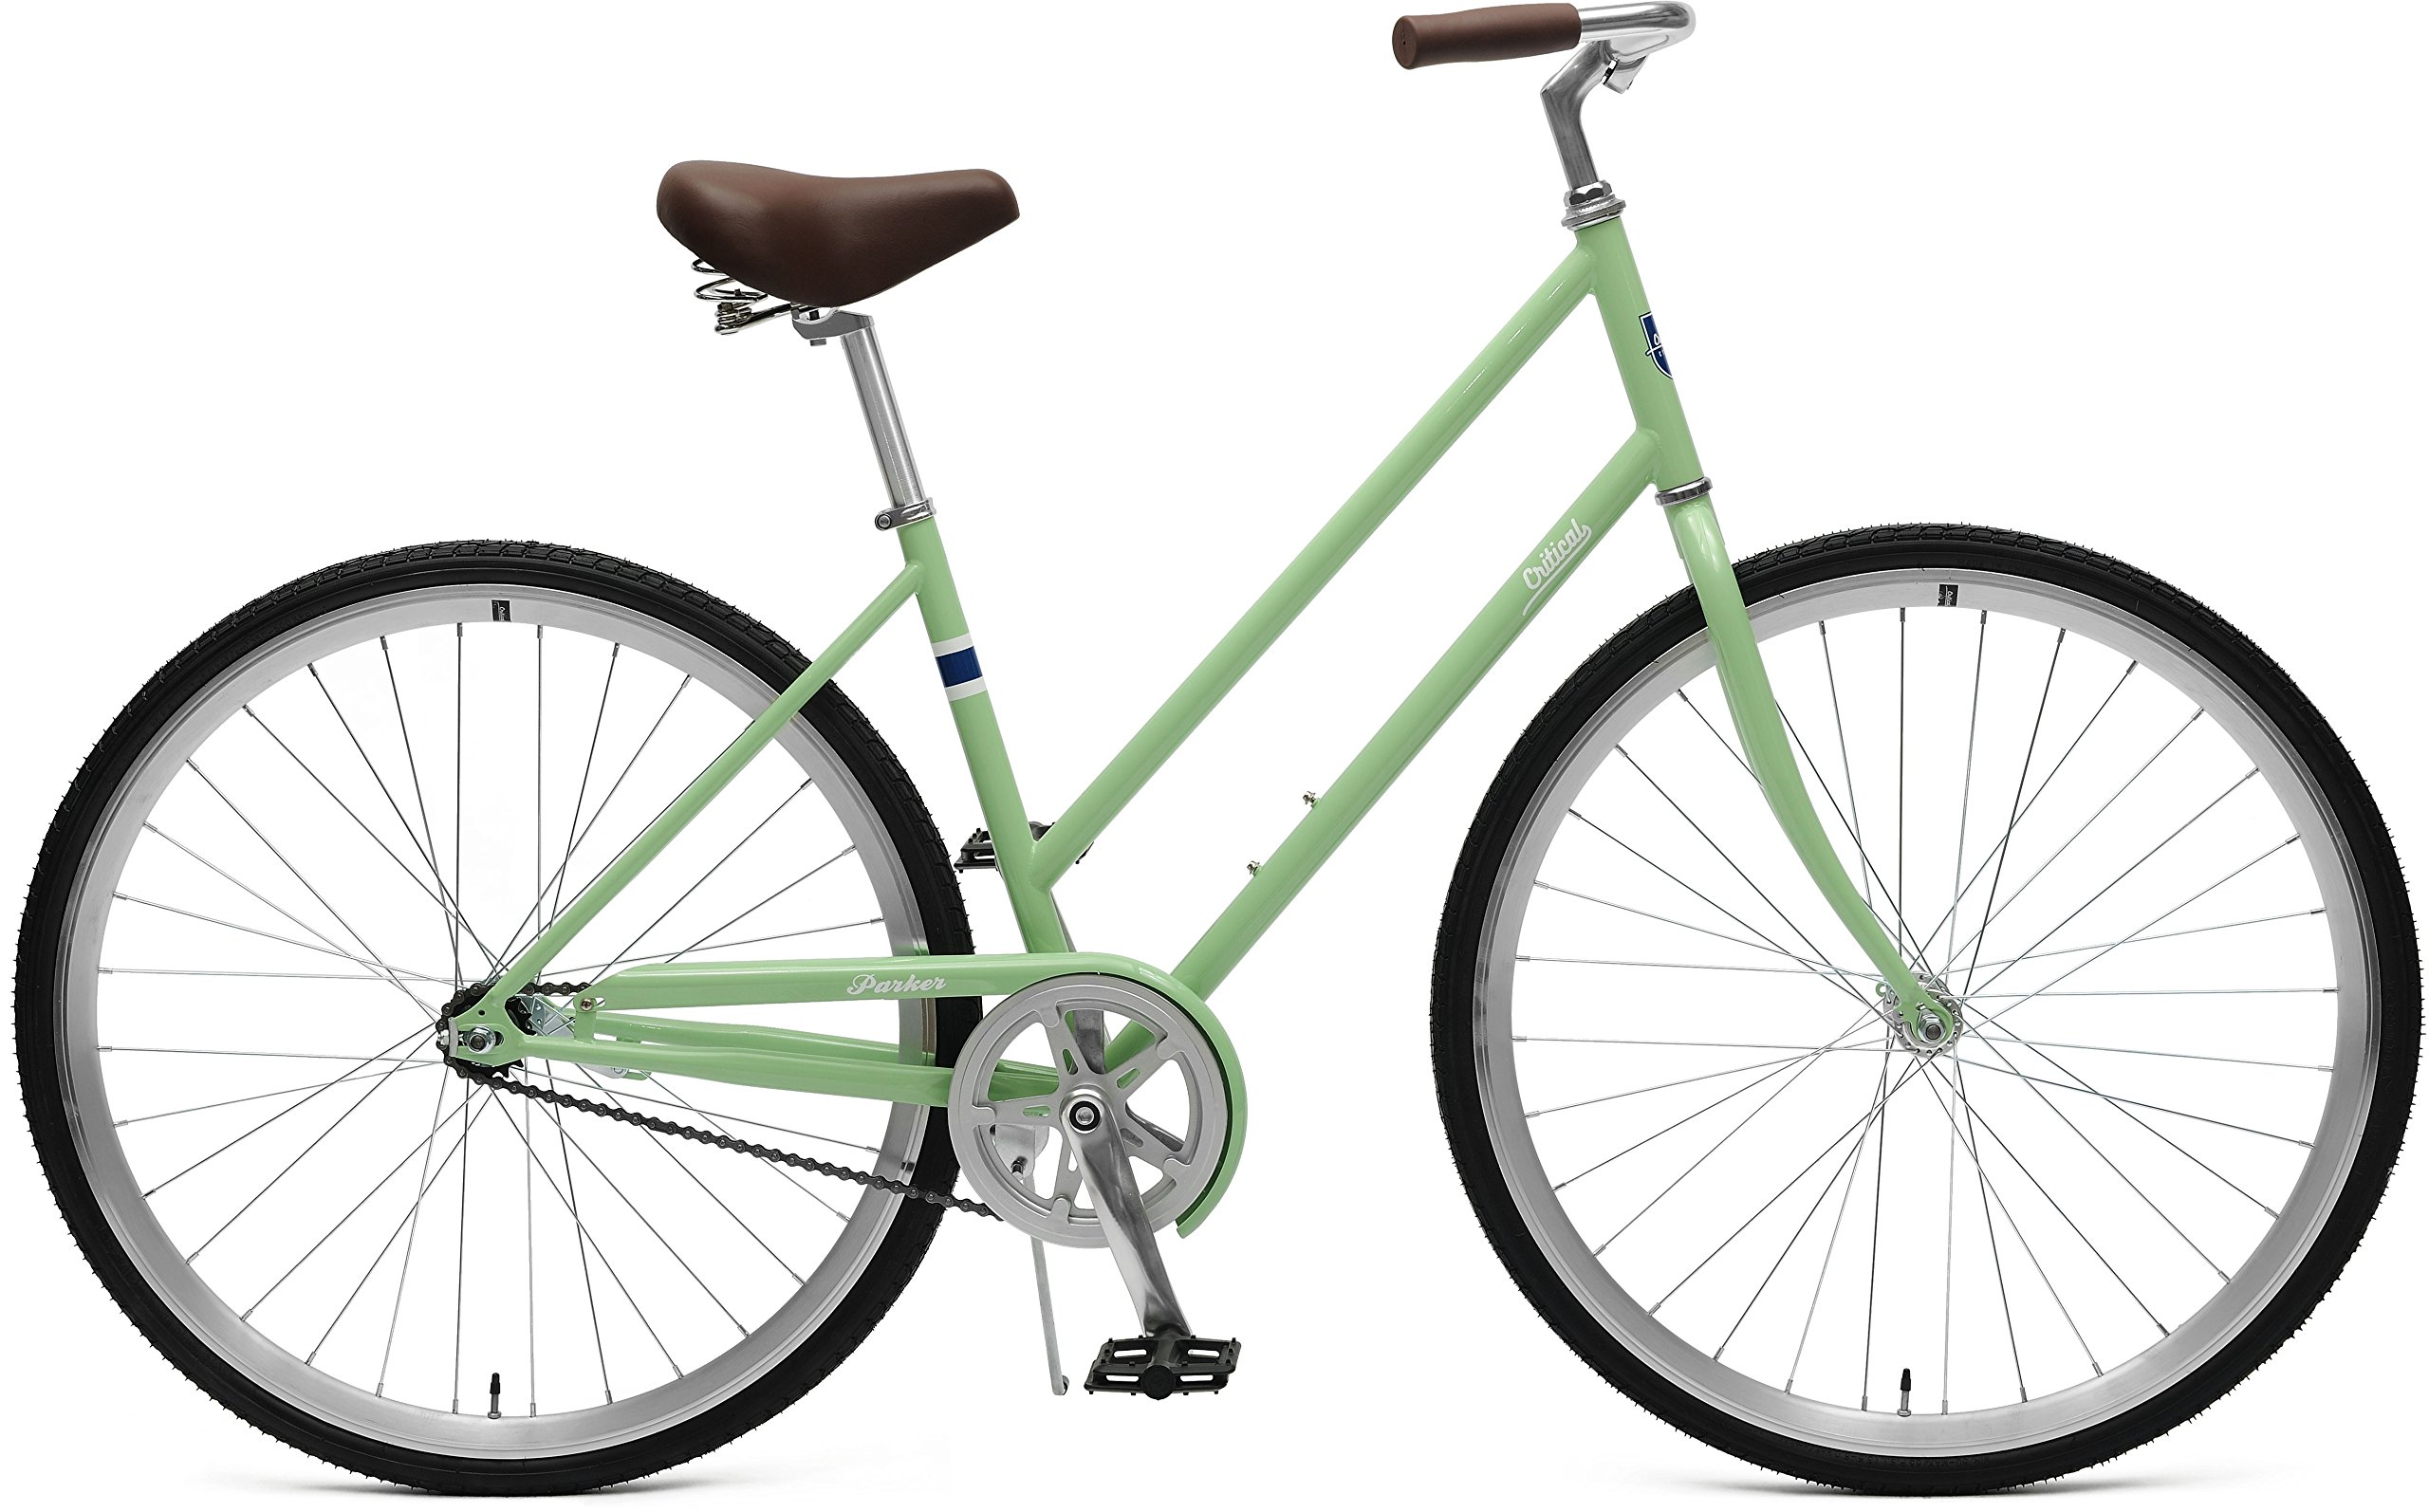 Retrospec Critical Cycles Parker Step-Thru City Bike with Coaster Brake